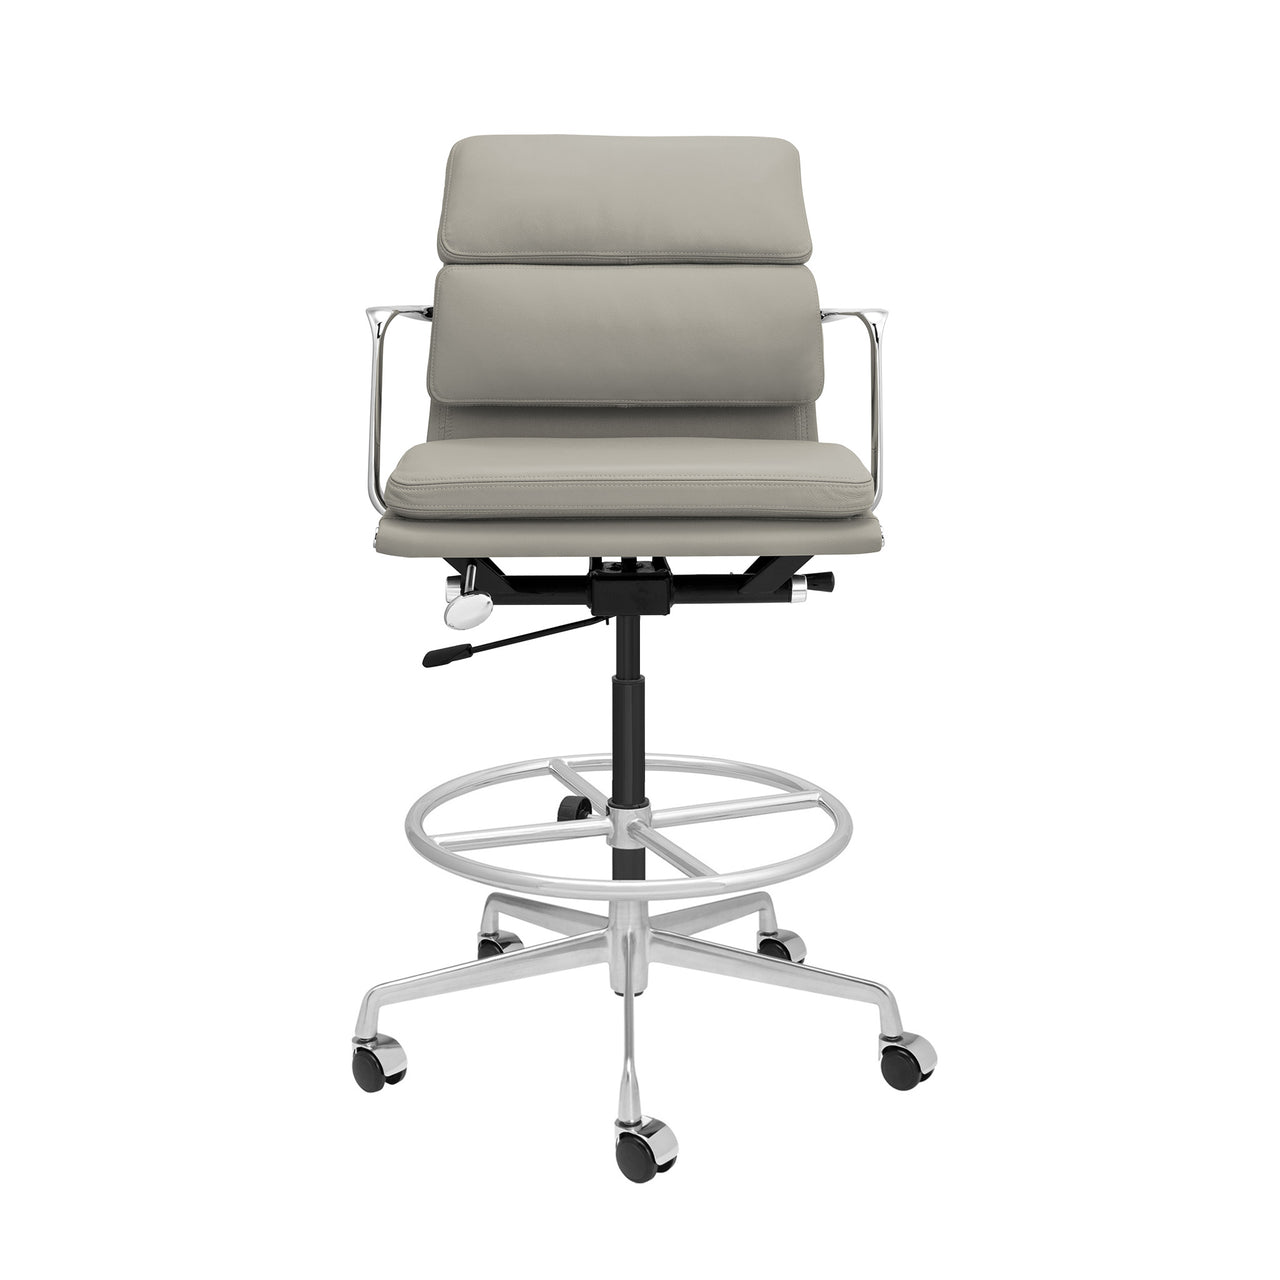 SOHO Pro Soft Pad Drafting Chair (Grey Italian Leather)